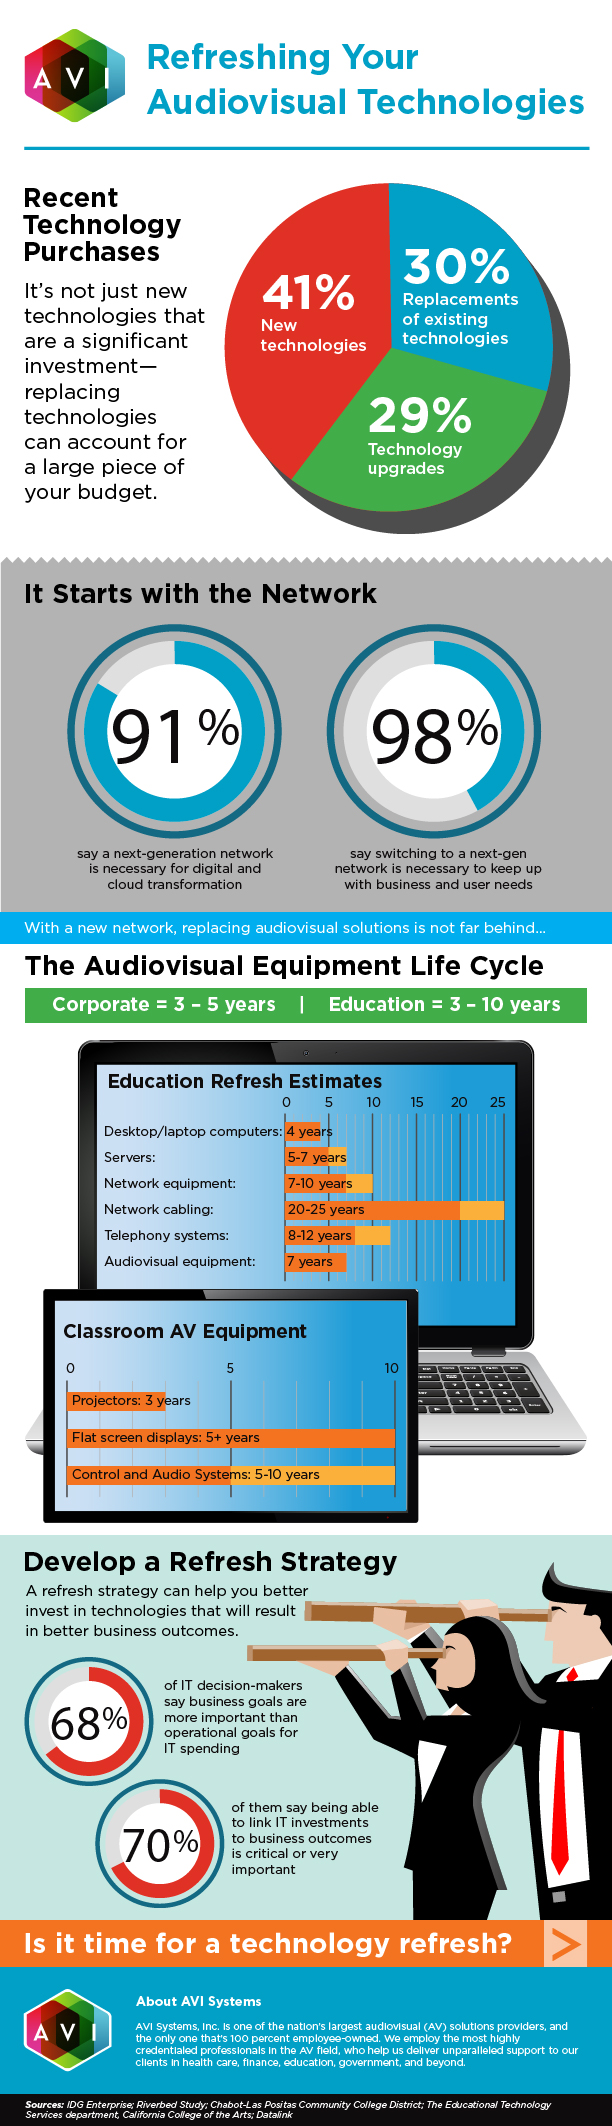 Refreshing your audiovisual technologies | AVI Systems